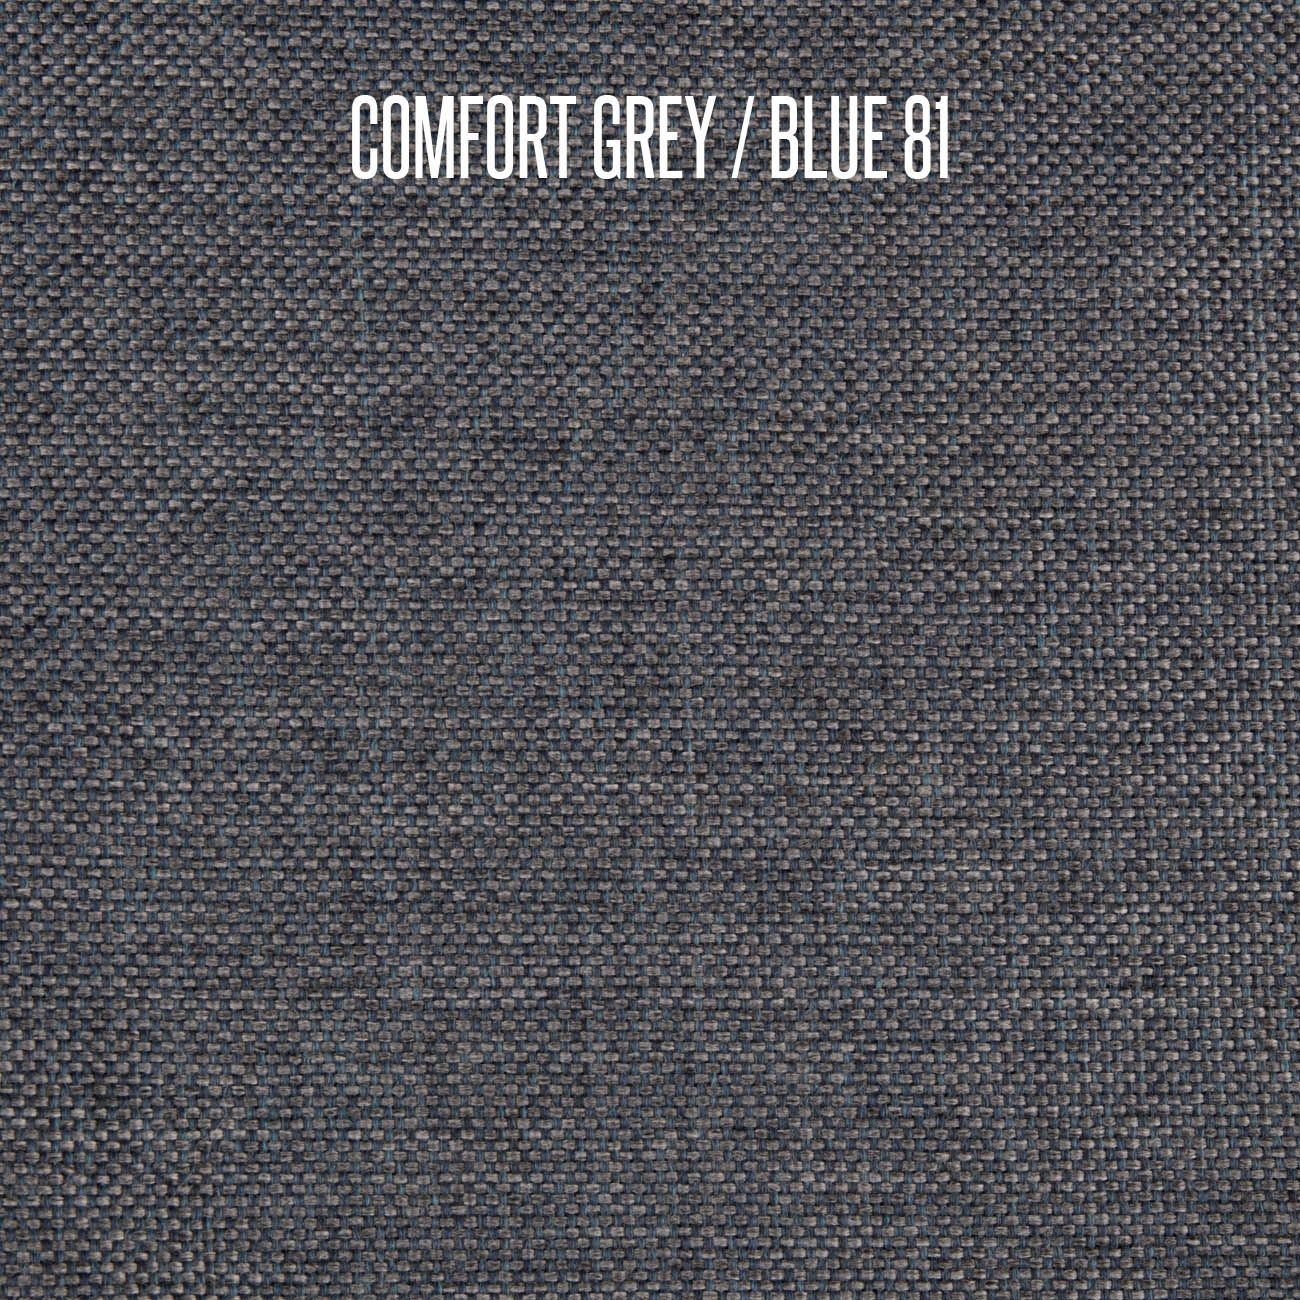 comfort-grey-blue-81-swatch